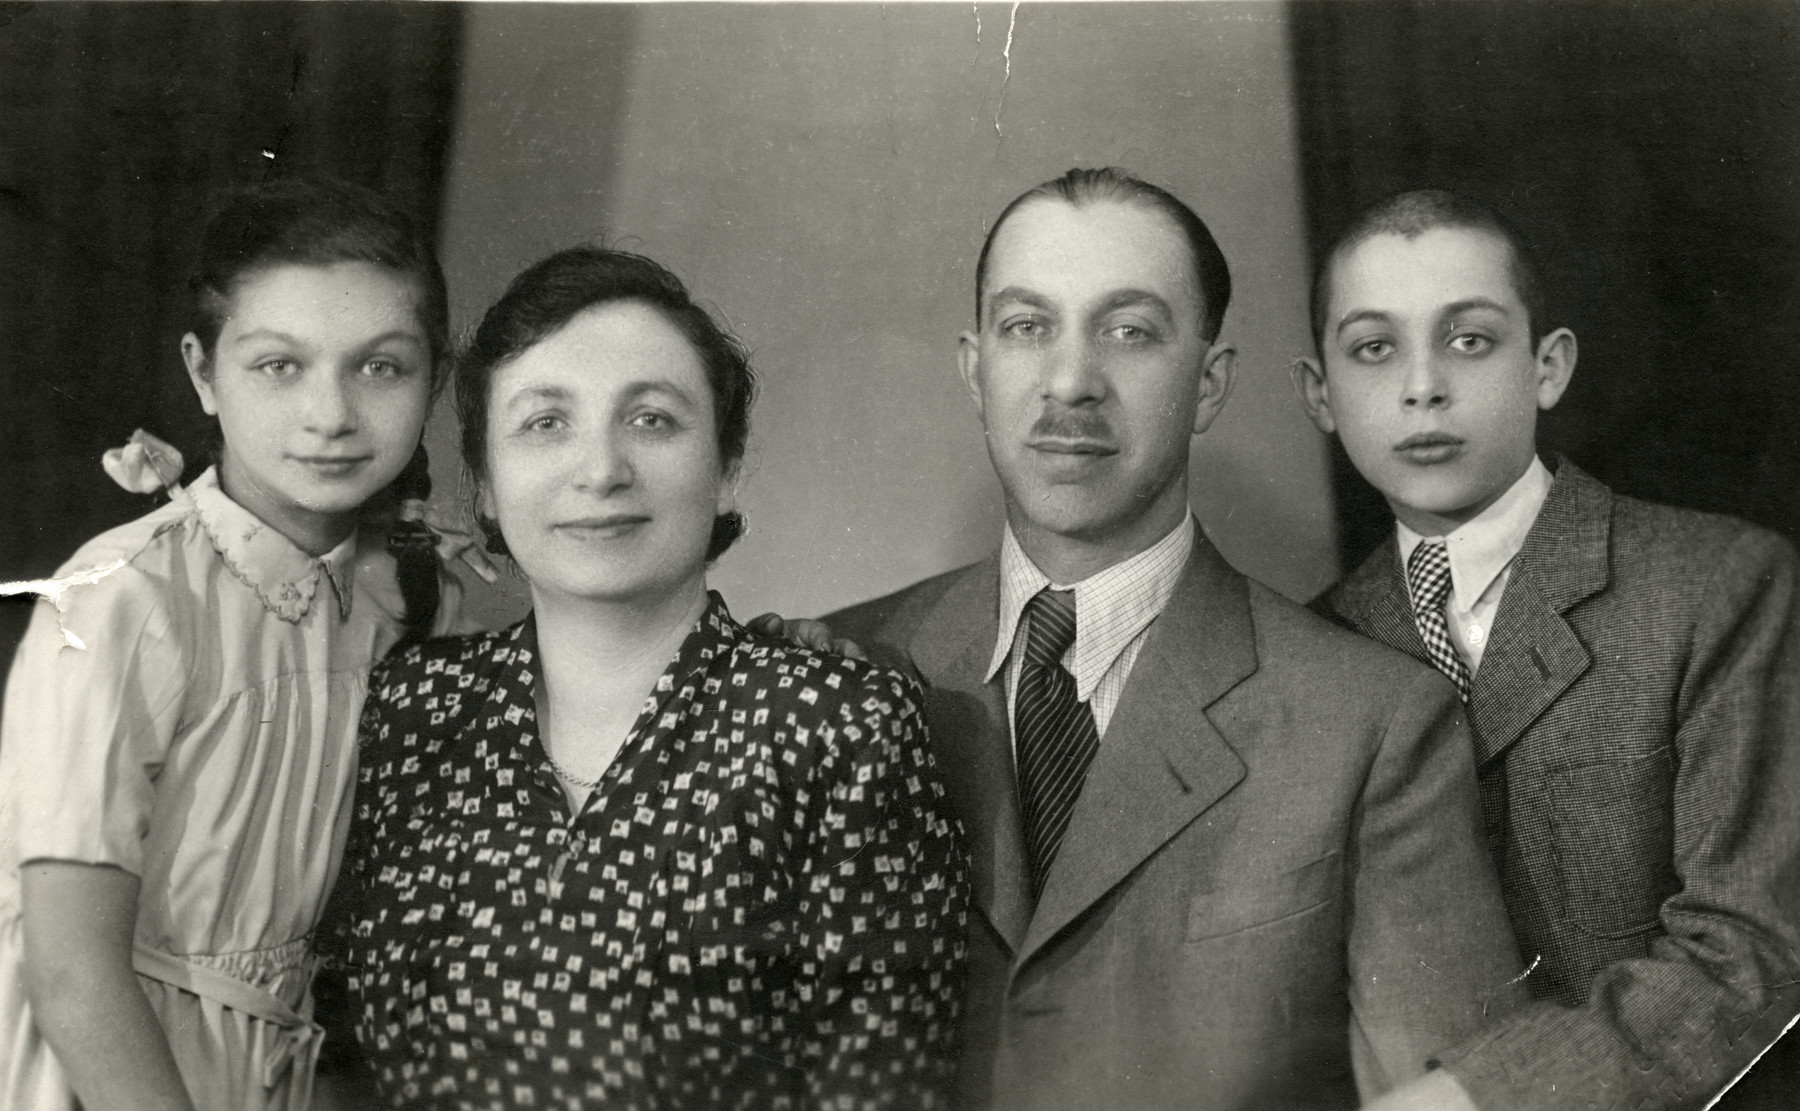 Studio portrait of the Eckstein family in wartime Bratislava.  Pictured from left to right are Eva, Helena, Eugene and Ernst (Benjamin) Eckstein.